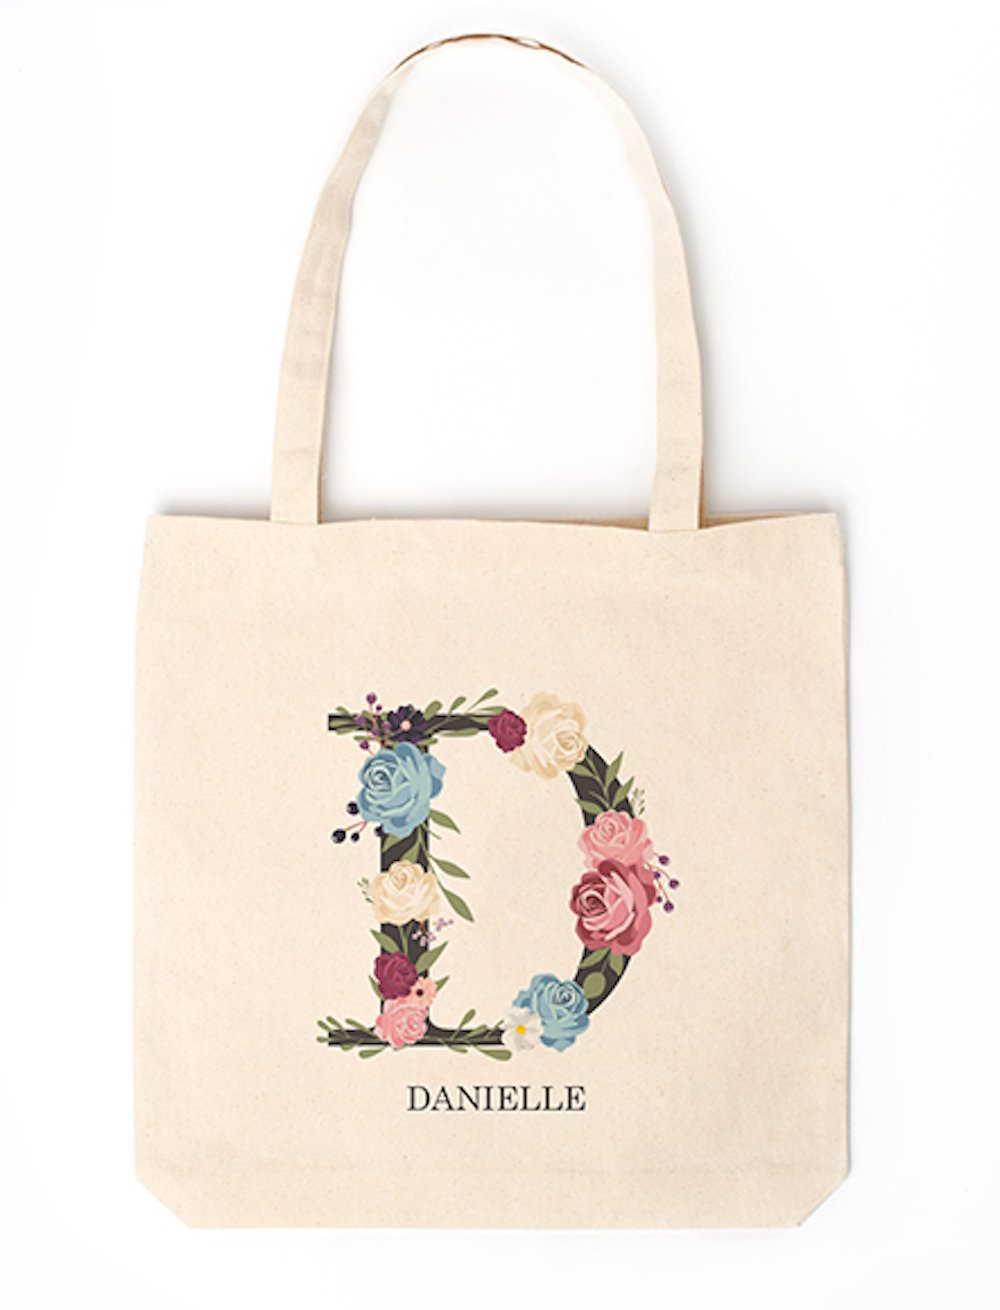 Personalized Monogrammed Tote Bags for Women - Unique Monogrammed Gifts for Women, Also A Gift for Mom (Letter D)